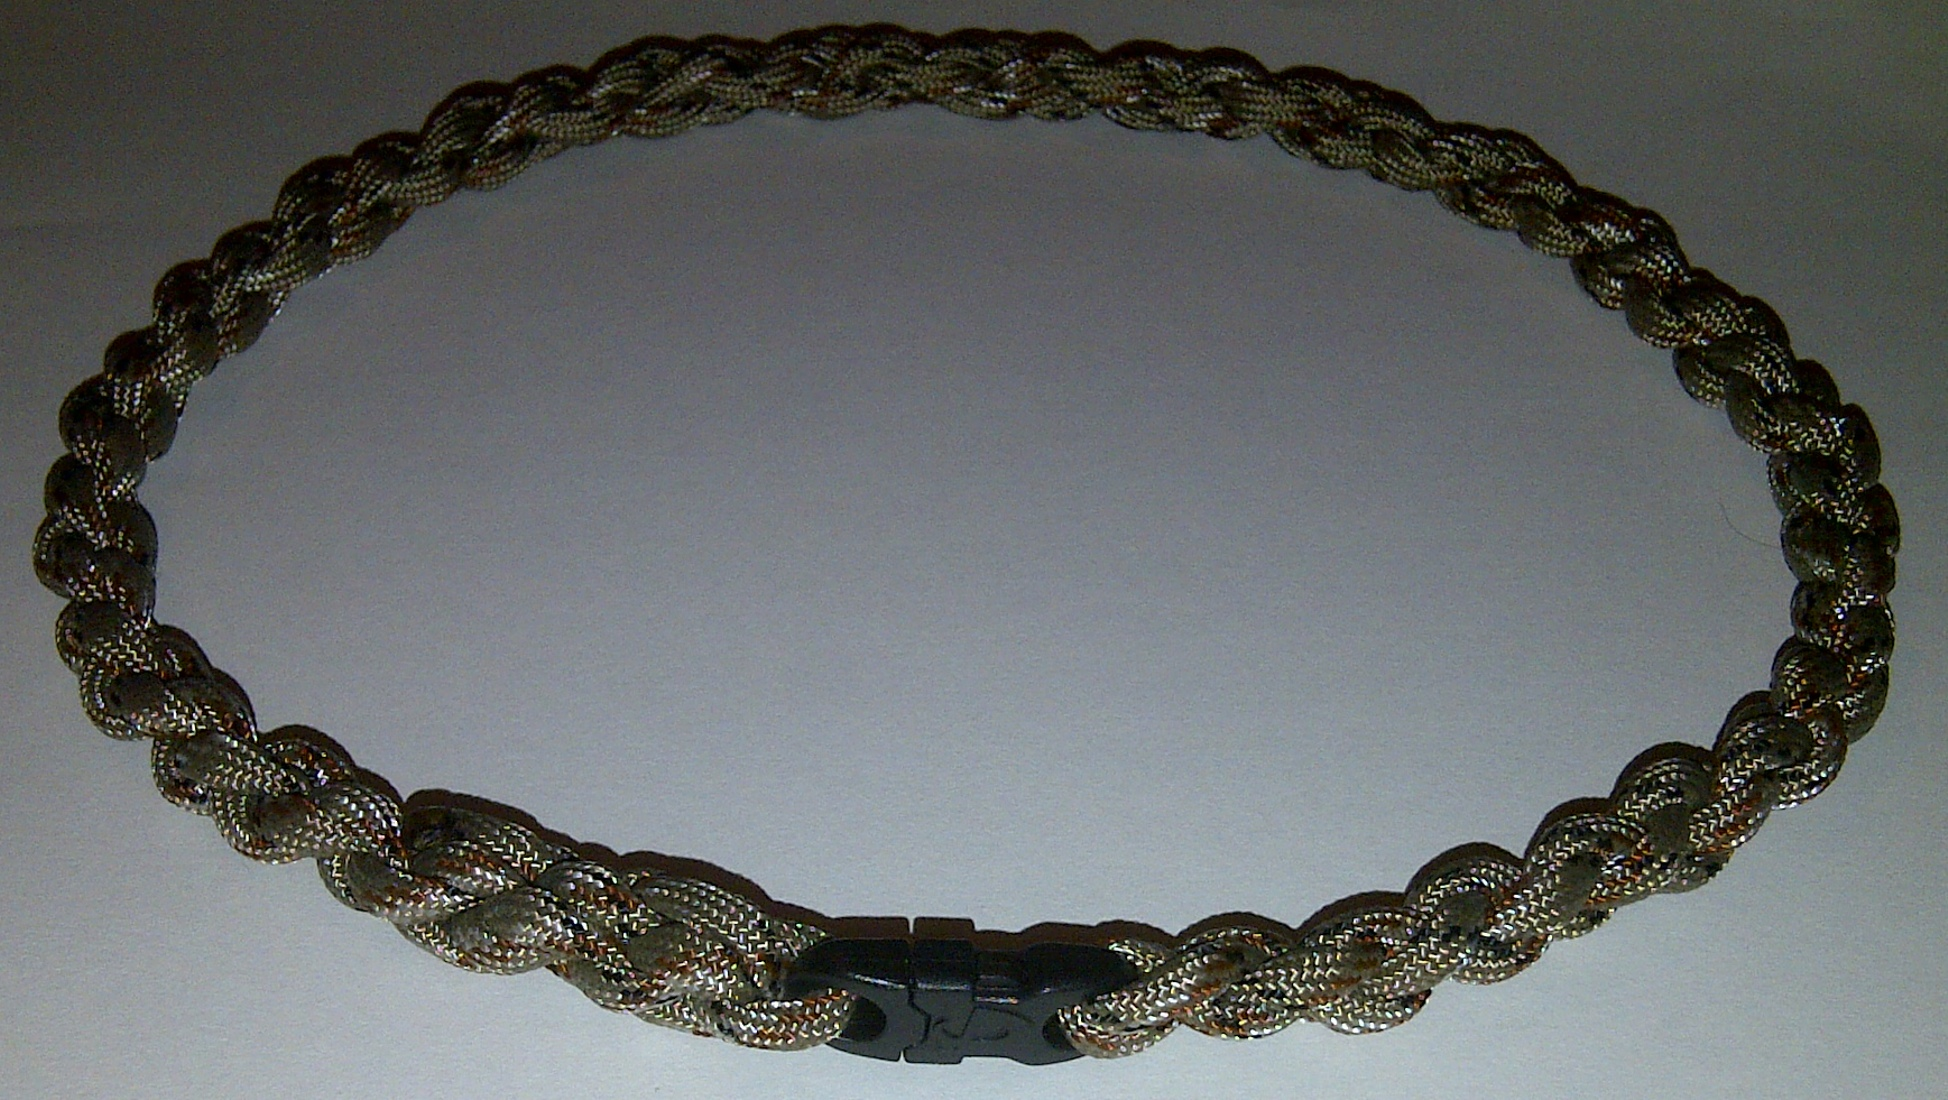 paracord survival necklaces noreast whips